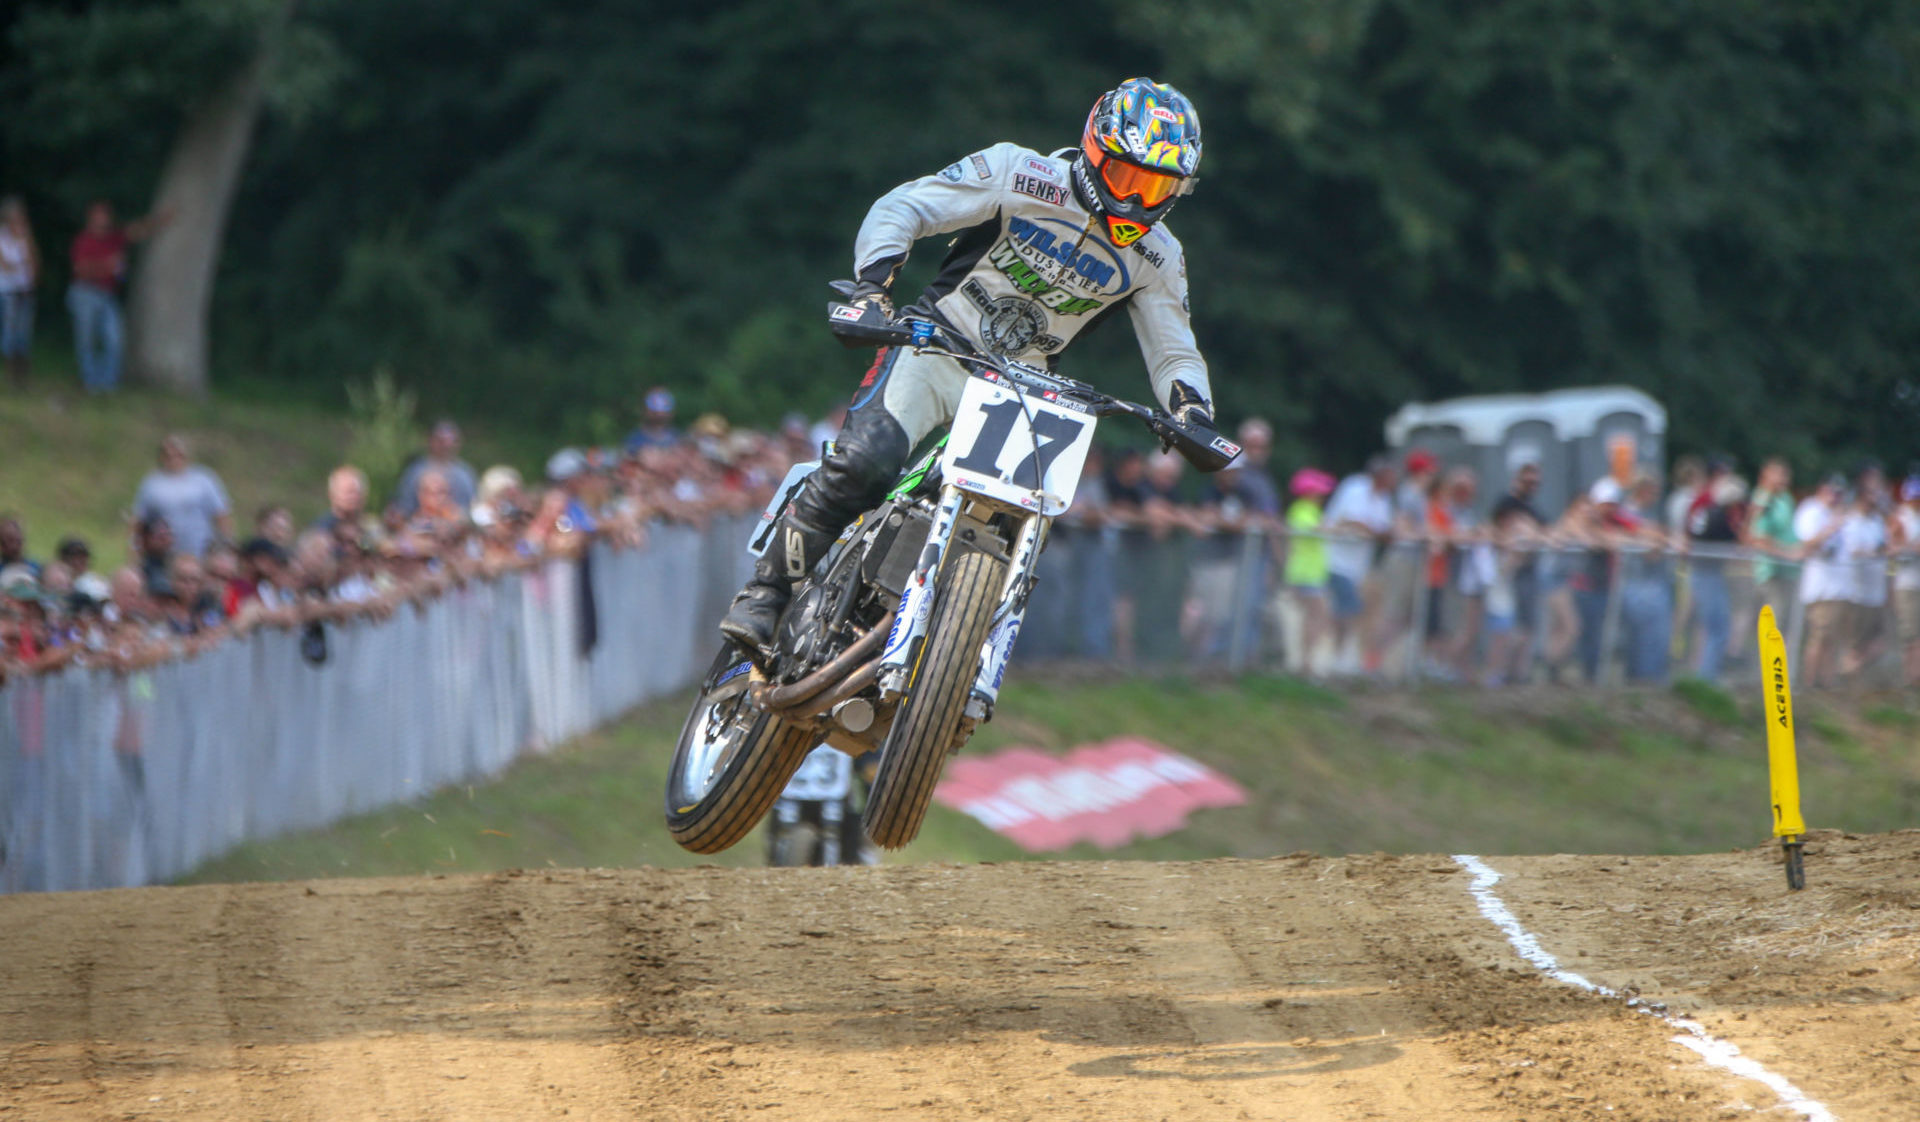 Henry Wiles (17) in action at the Peoria TT in 2018. Photo by Scott Hunter, courtesy AFT.